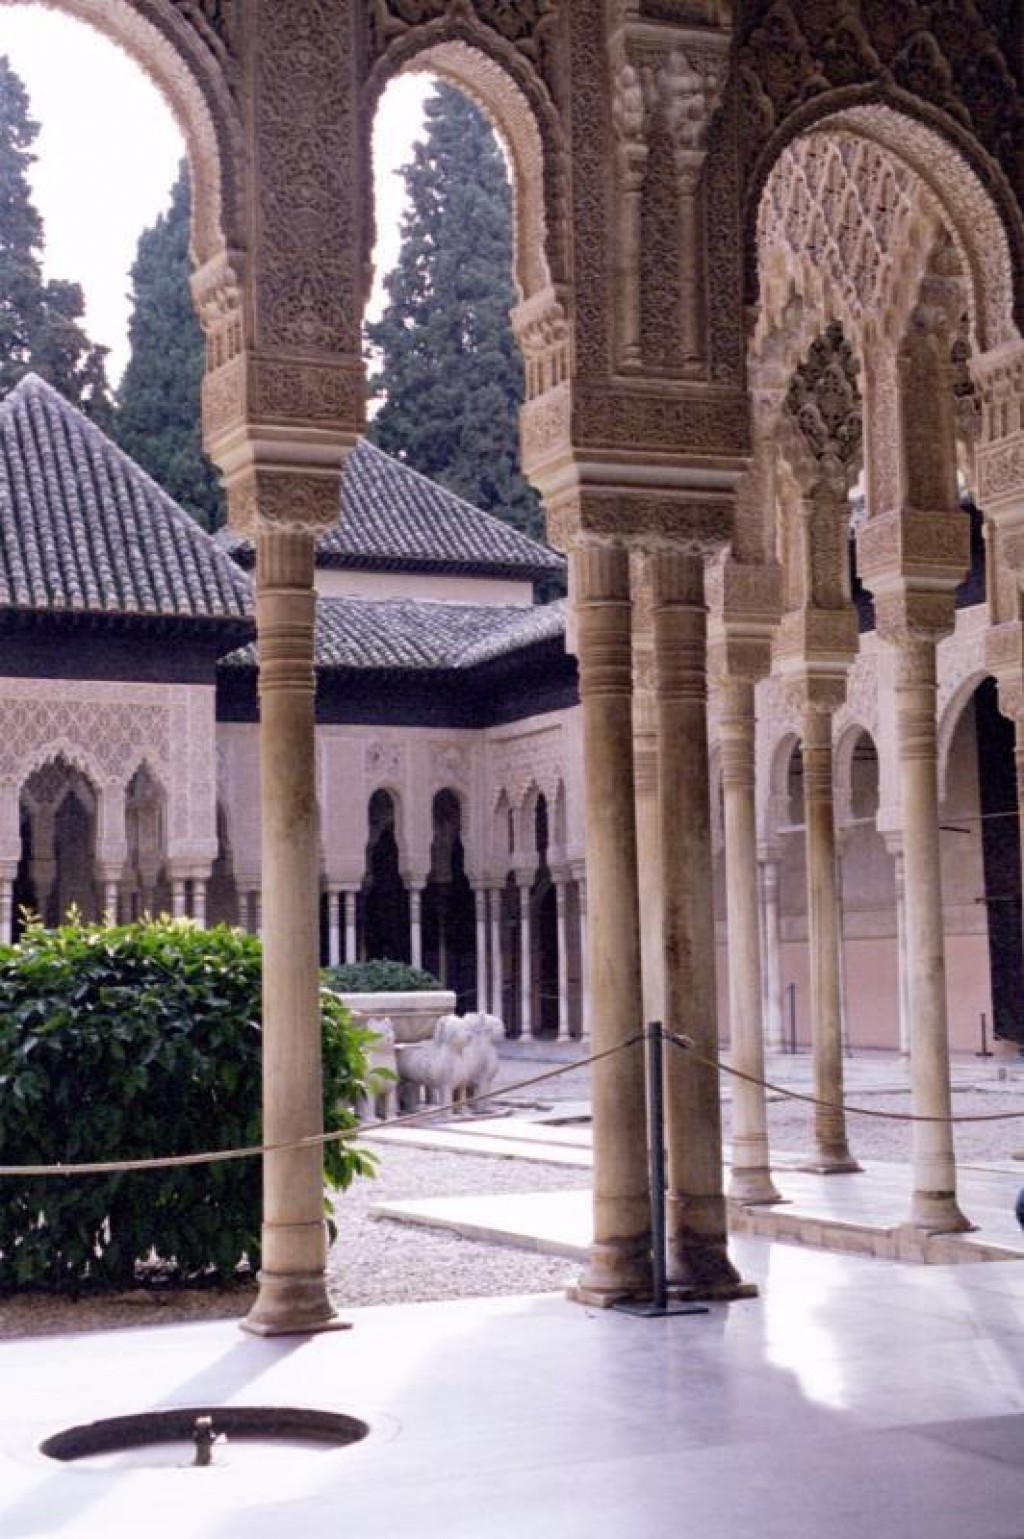 The Alhambra was the palace and fortress of the Moorish monarchs of Granada.